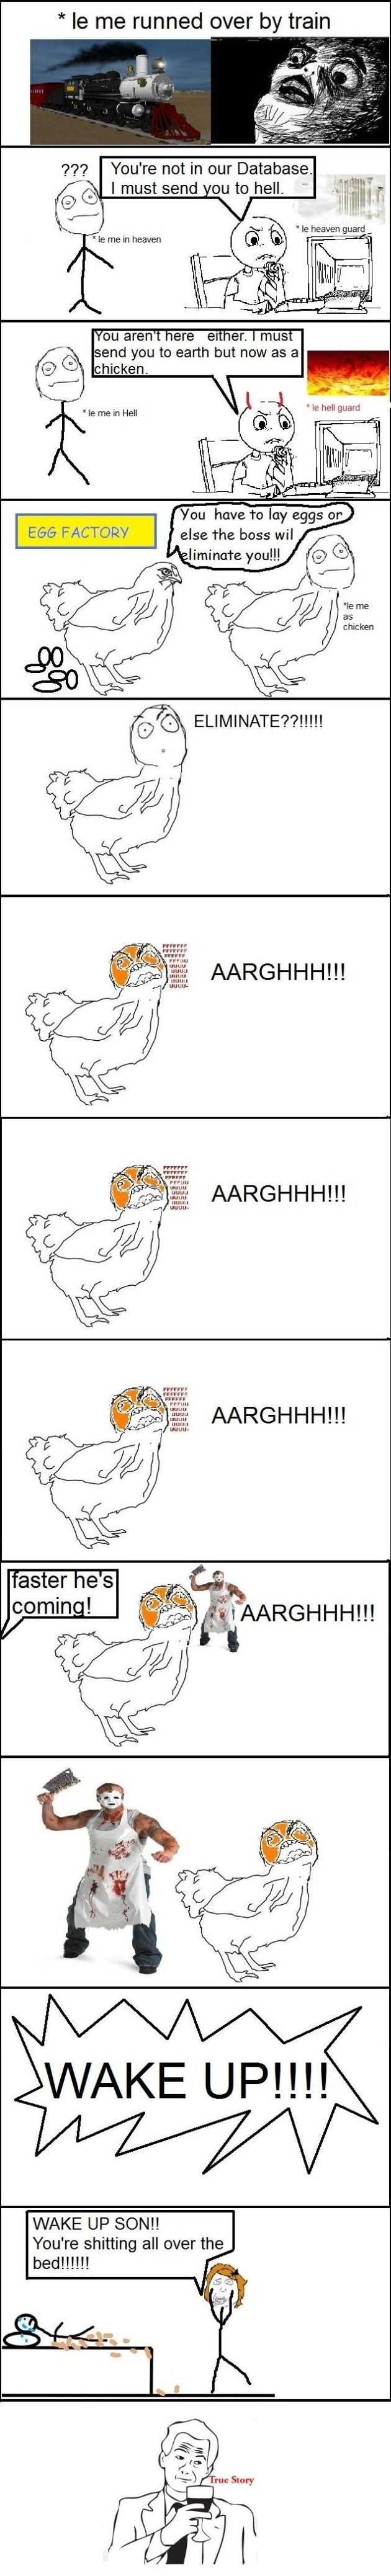 Rage Comics - The Dream - MEME, Funny Pictures and LOL